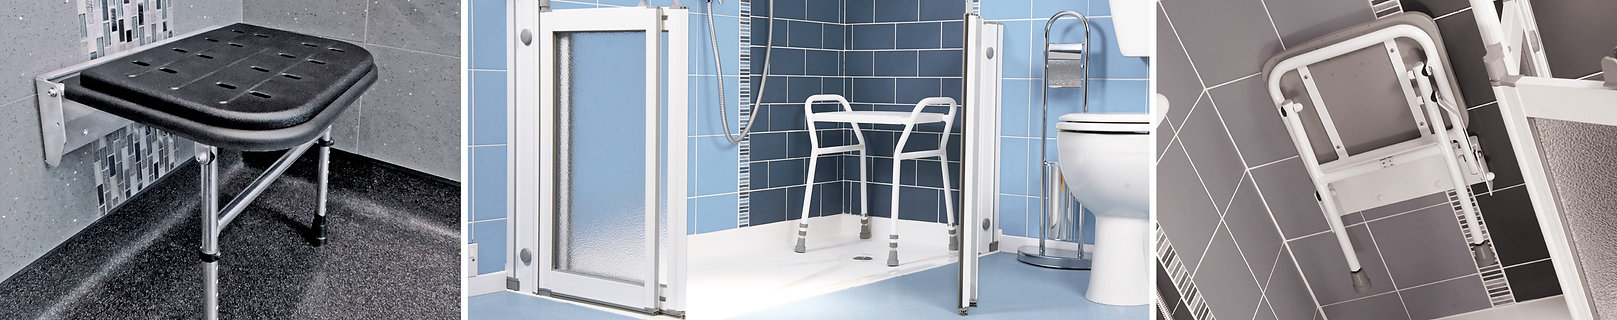 products-shower-seats-1-master4650x920.j